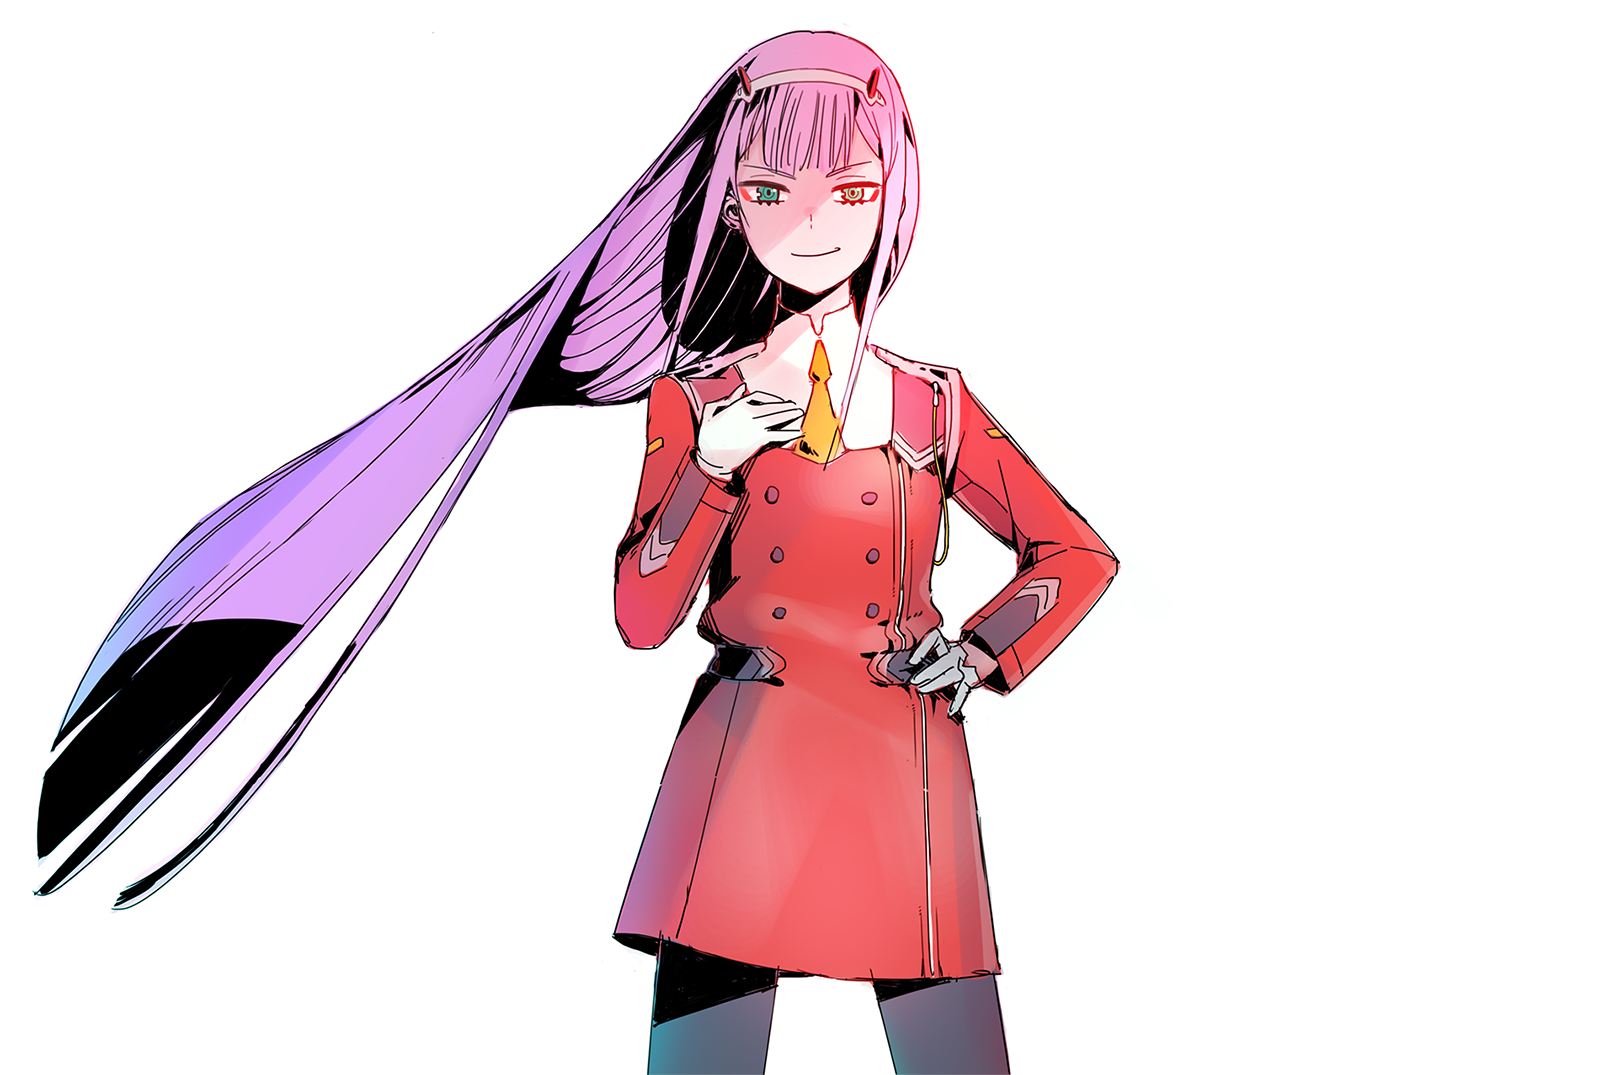 动漫 - Darling in the FranXX  Zero Two (Darling in the FranXX) Long Hair Pink Hair Green Eyes Smile Horns 壁纸